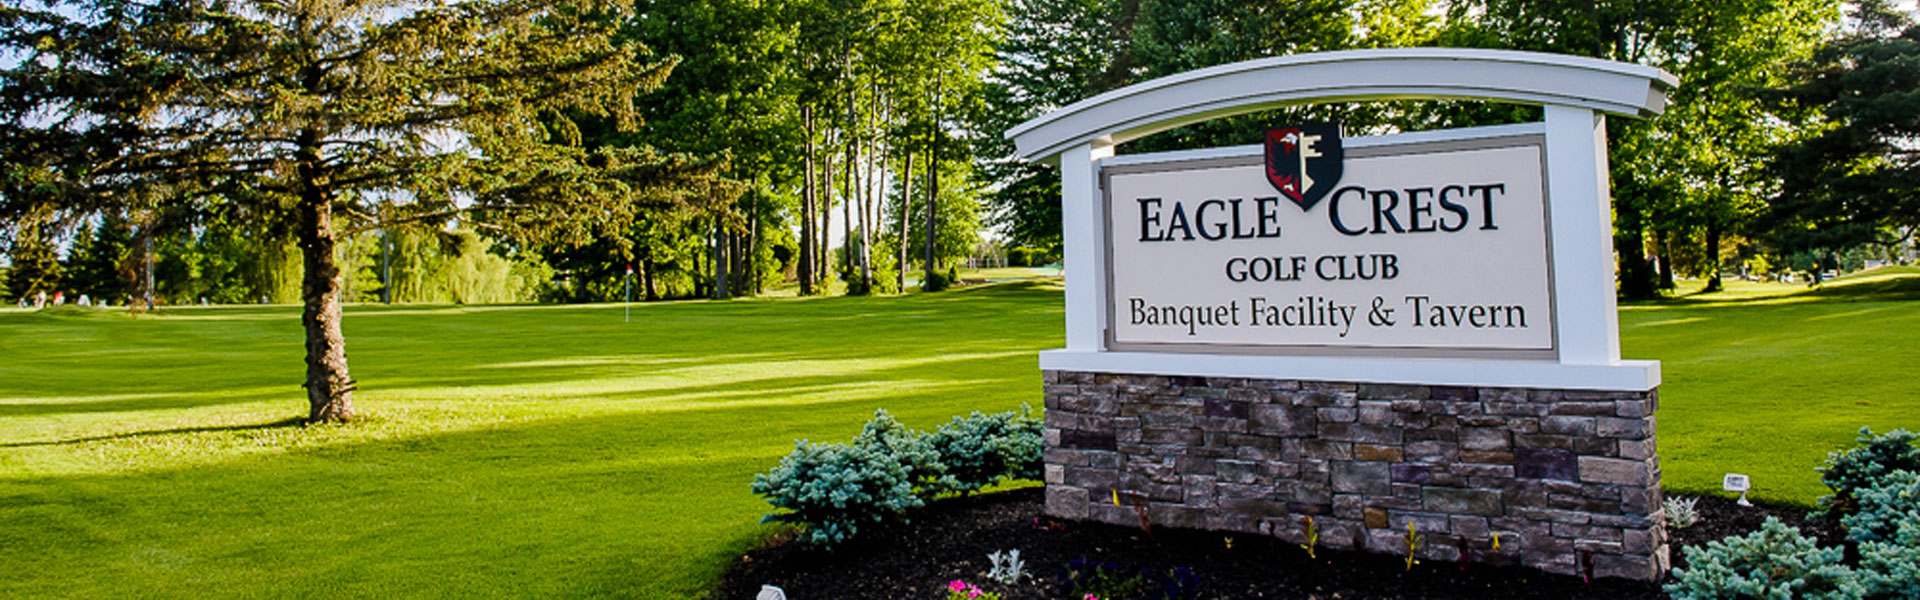 Eagle Crest Golf Club | Banquet Facility and Tavern